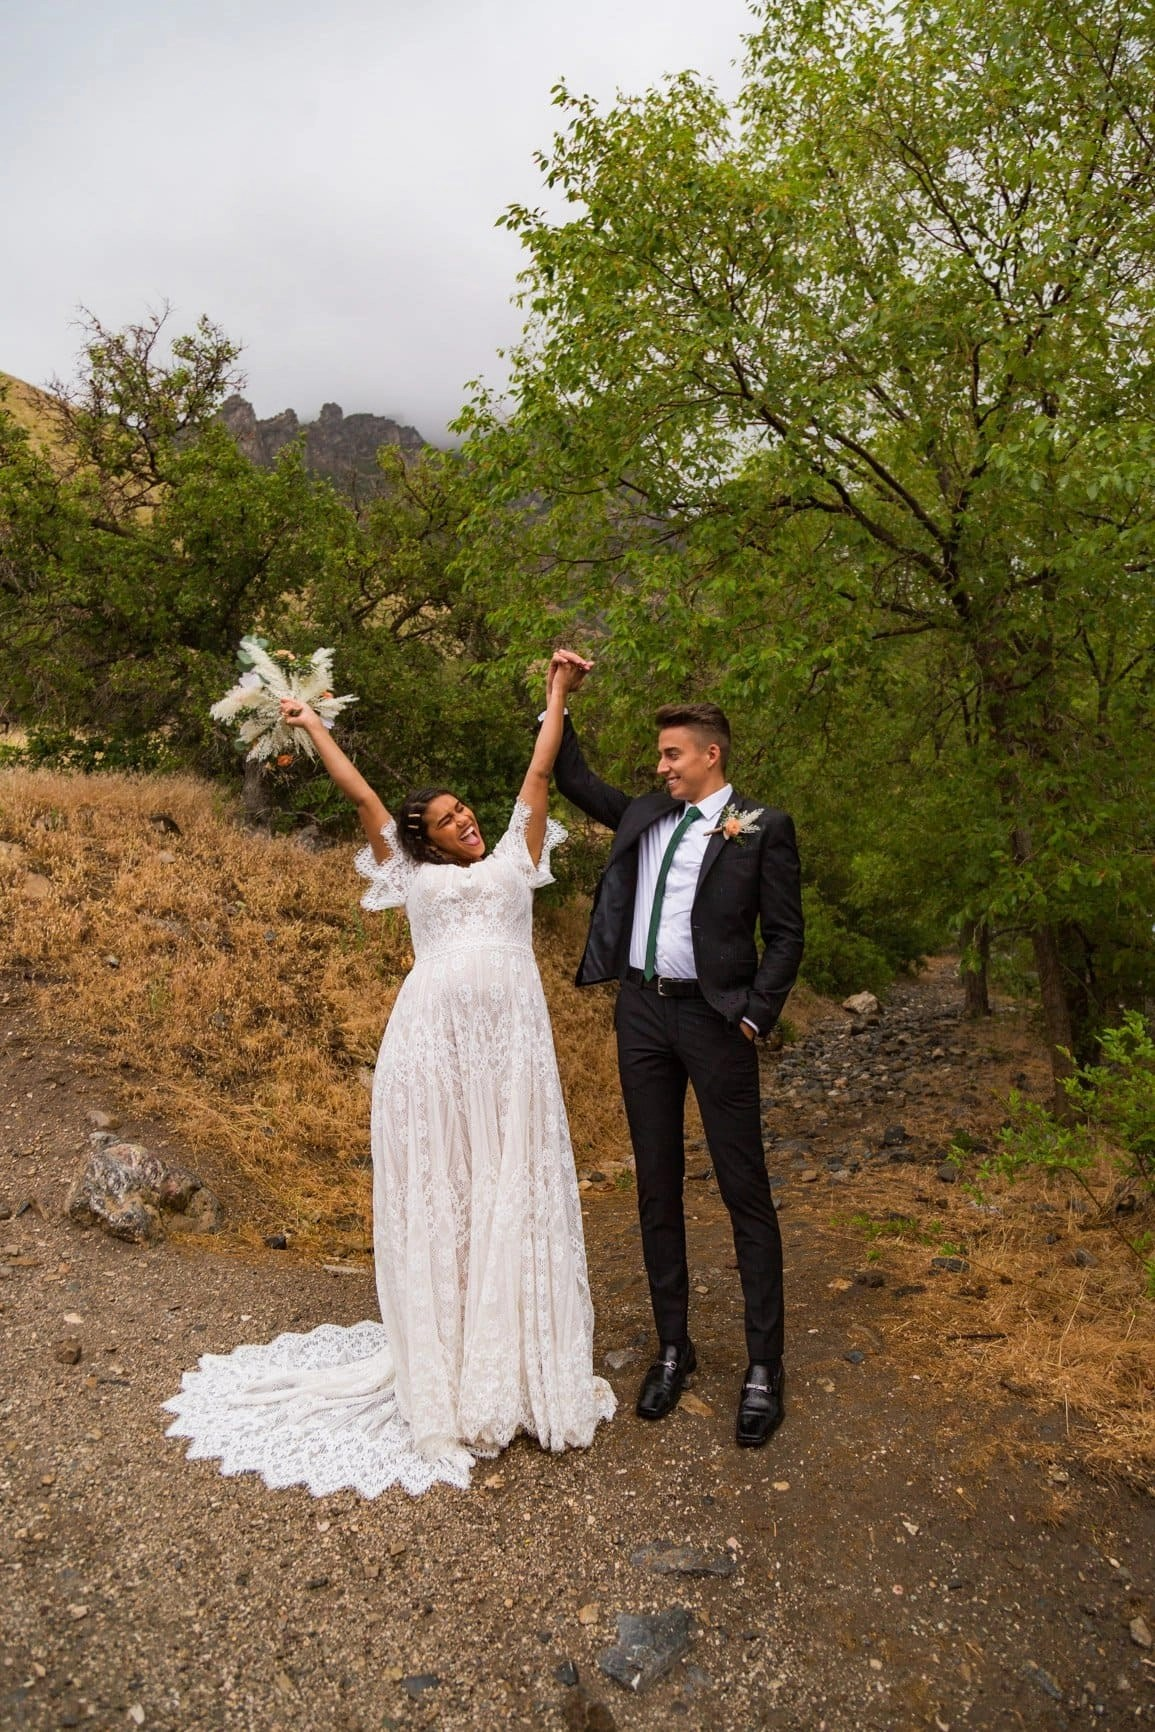 husband and wife celebrate their love by raising their hands in a forest in utah